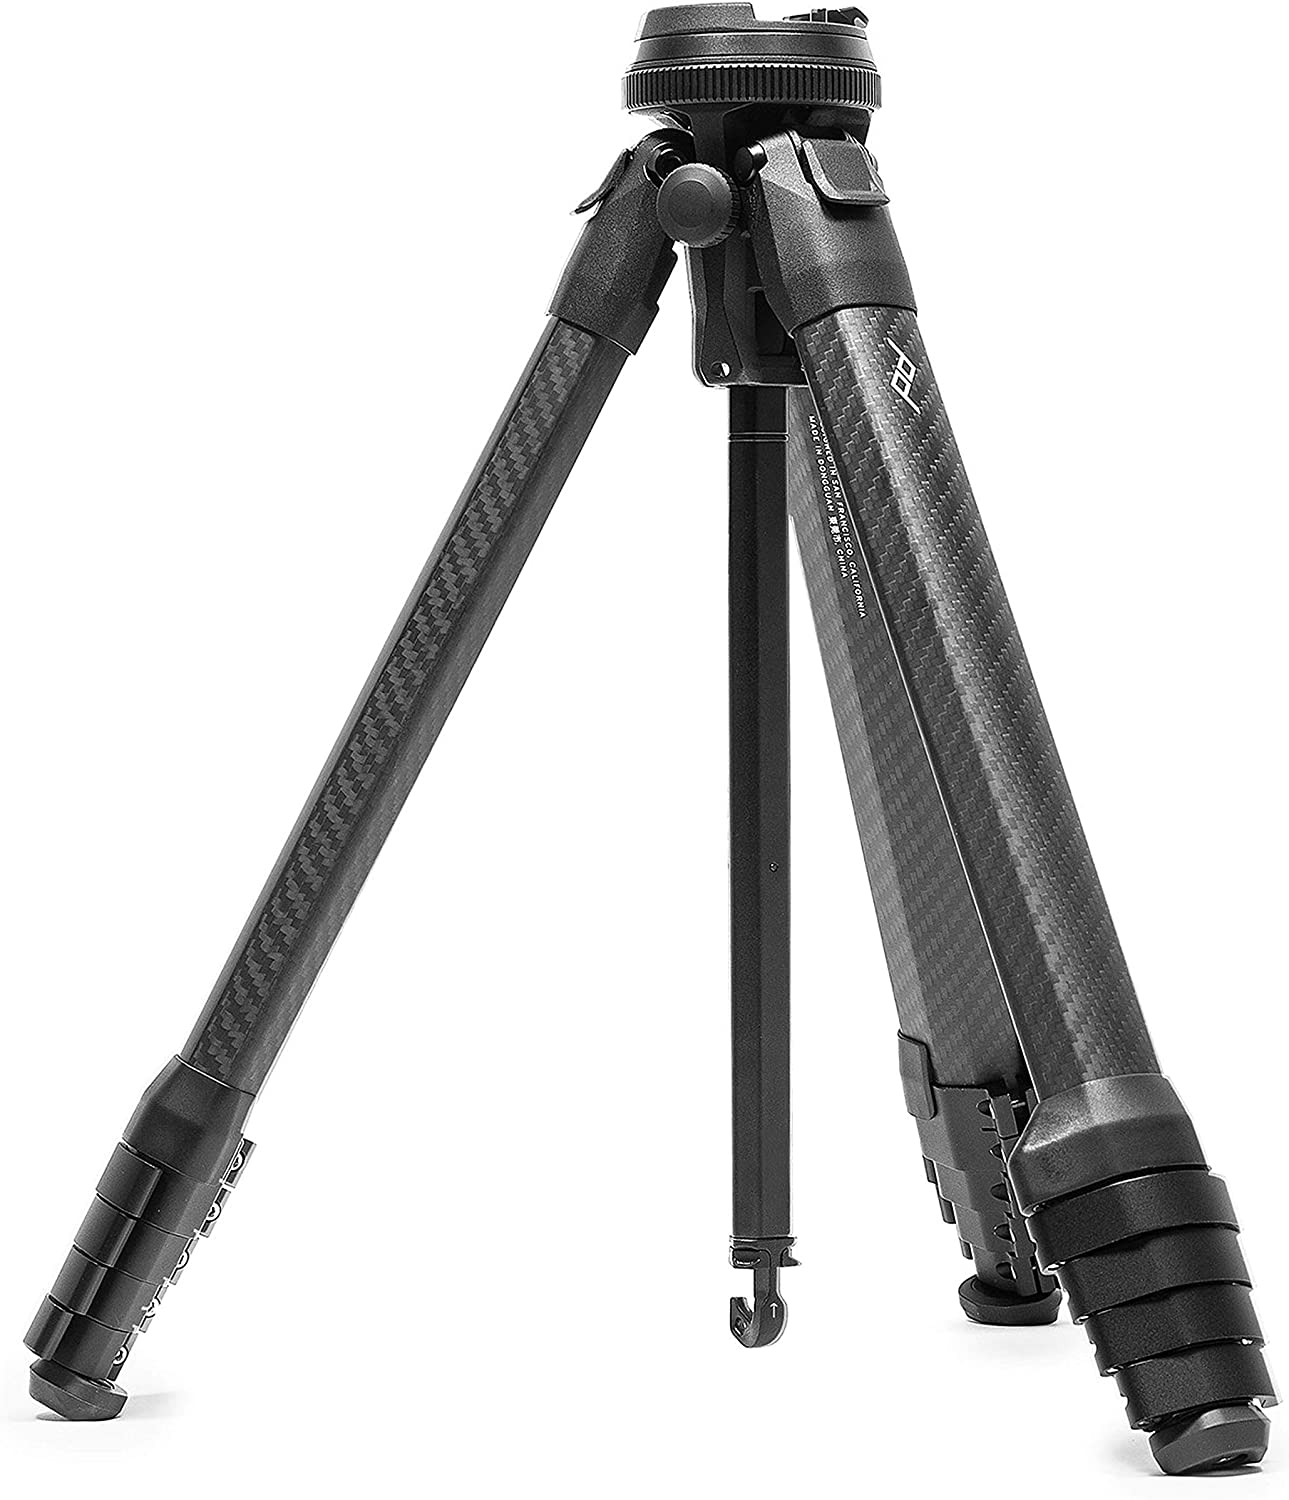 Amazon Com Peak Design Travel Tripod 5 Section Carbon Fiber Camera Photo